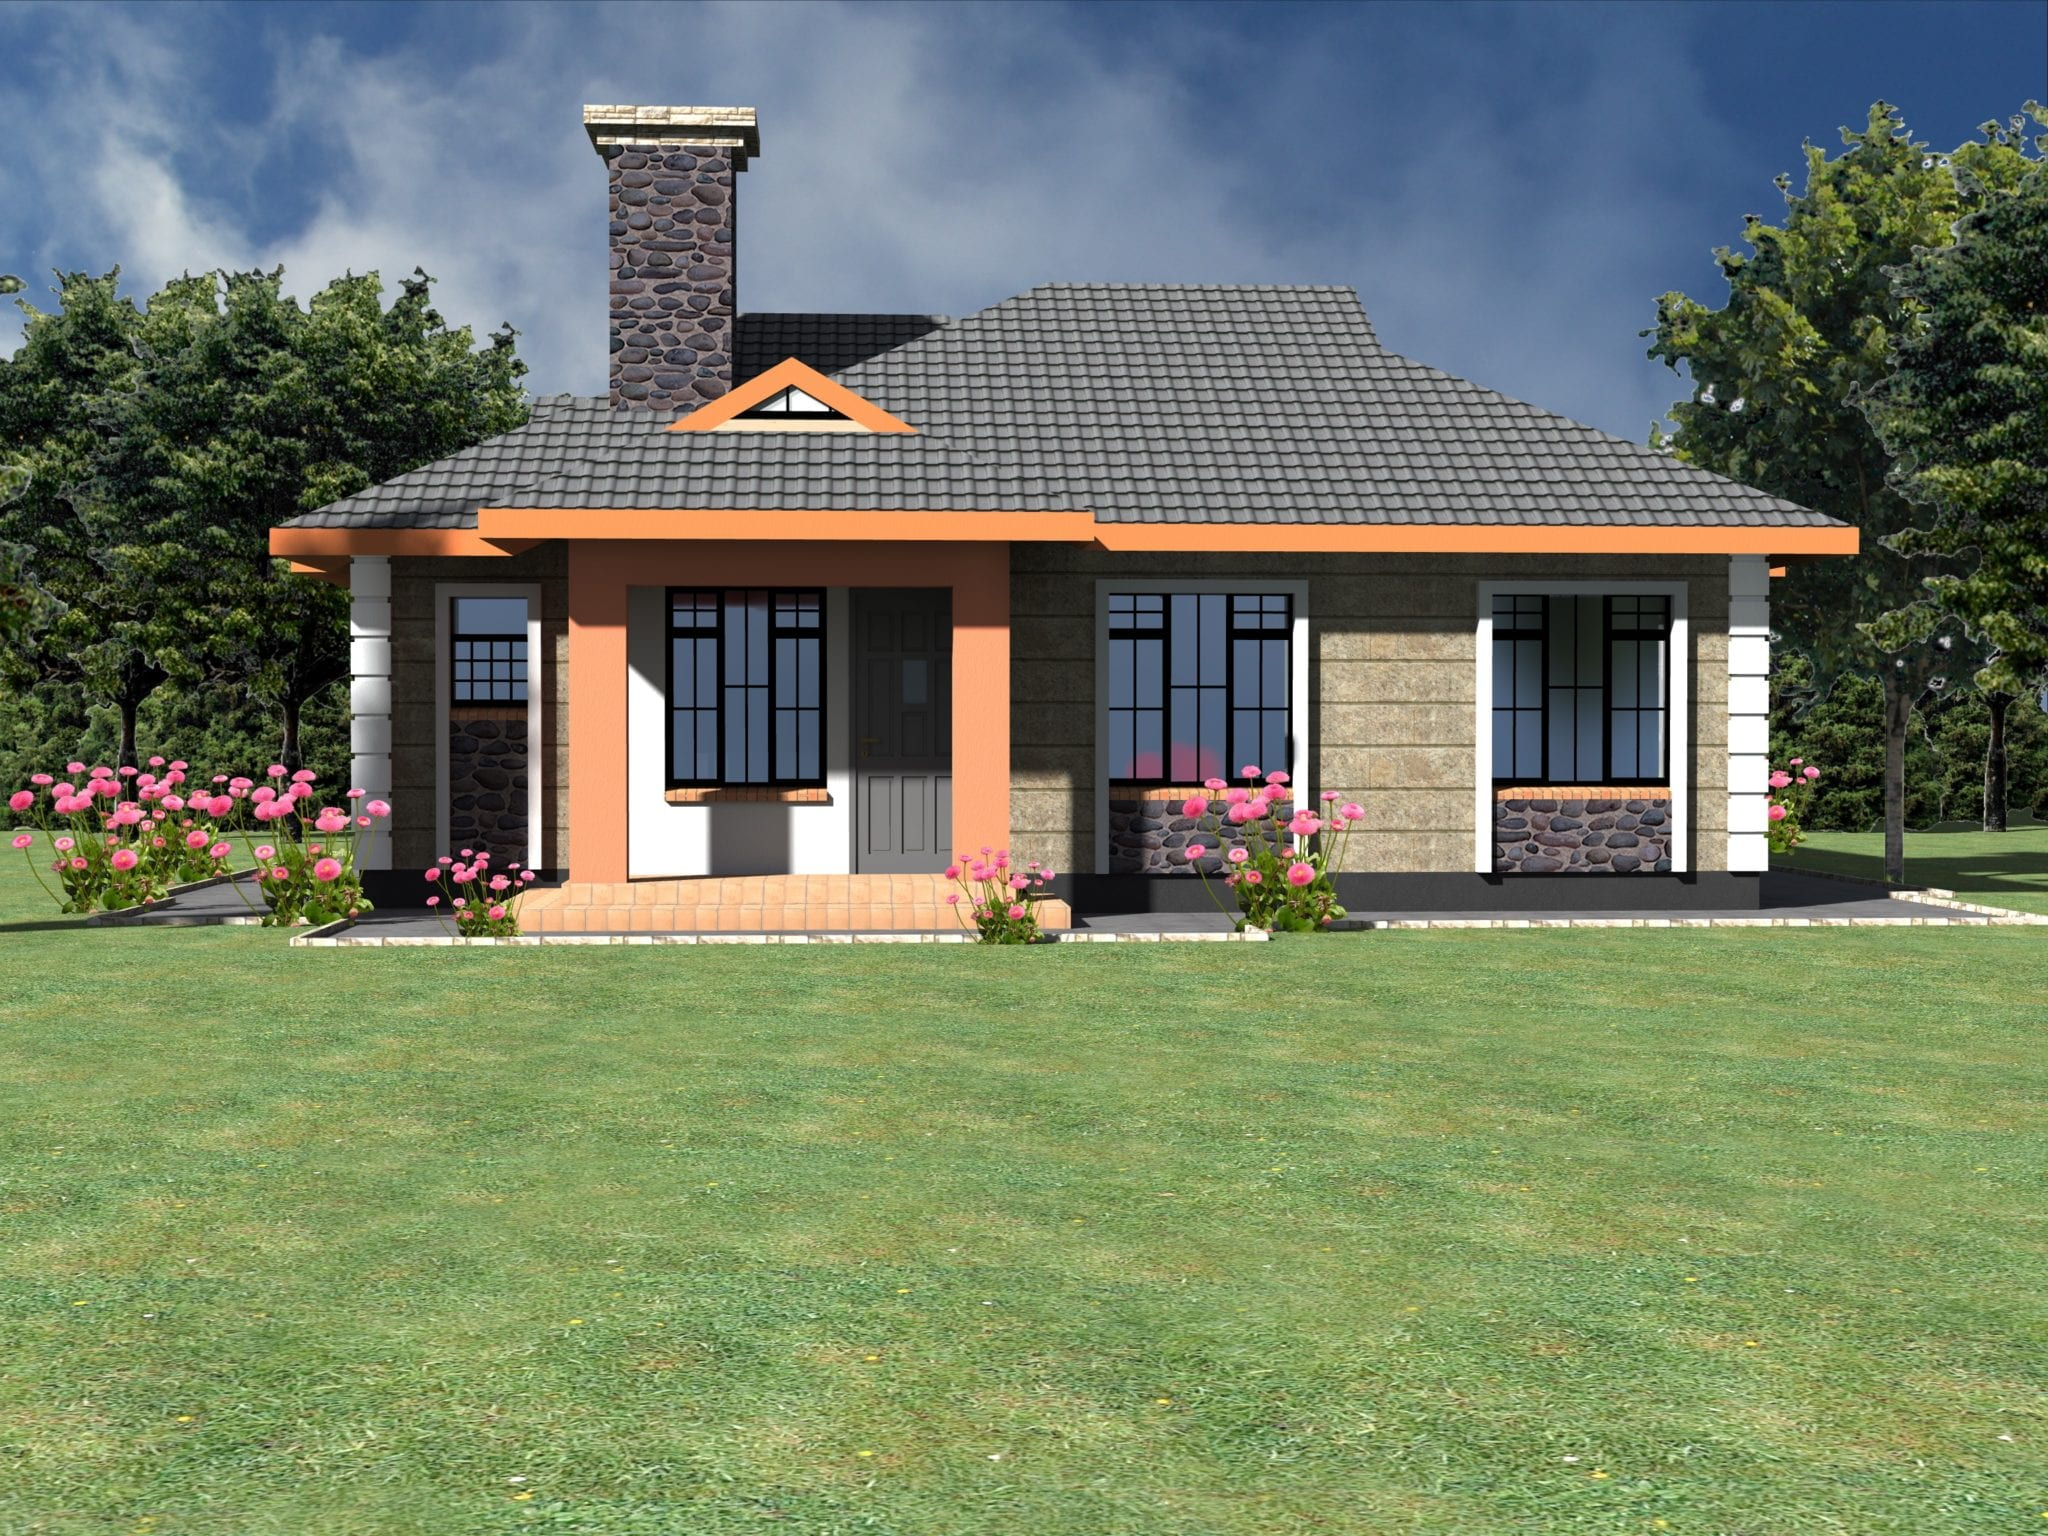 Neatly designed simple 3 bedroom bungalow house.. | HPD Consult on rome house plan, cape town house plan, tokyo house plan, lahore house plan, kenya house plan, victoria house plan, madrid house plan, san francisco house plan, houston house plan, barcelona house plan, new york house plan, nassau house plan, shiraz house plan, bamako house plan, tanzania house plan, philadelphia house plan, durban house plan, swahili house plan, toronto house plan,